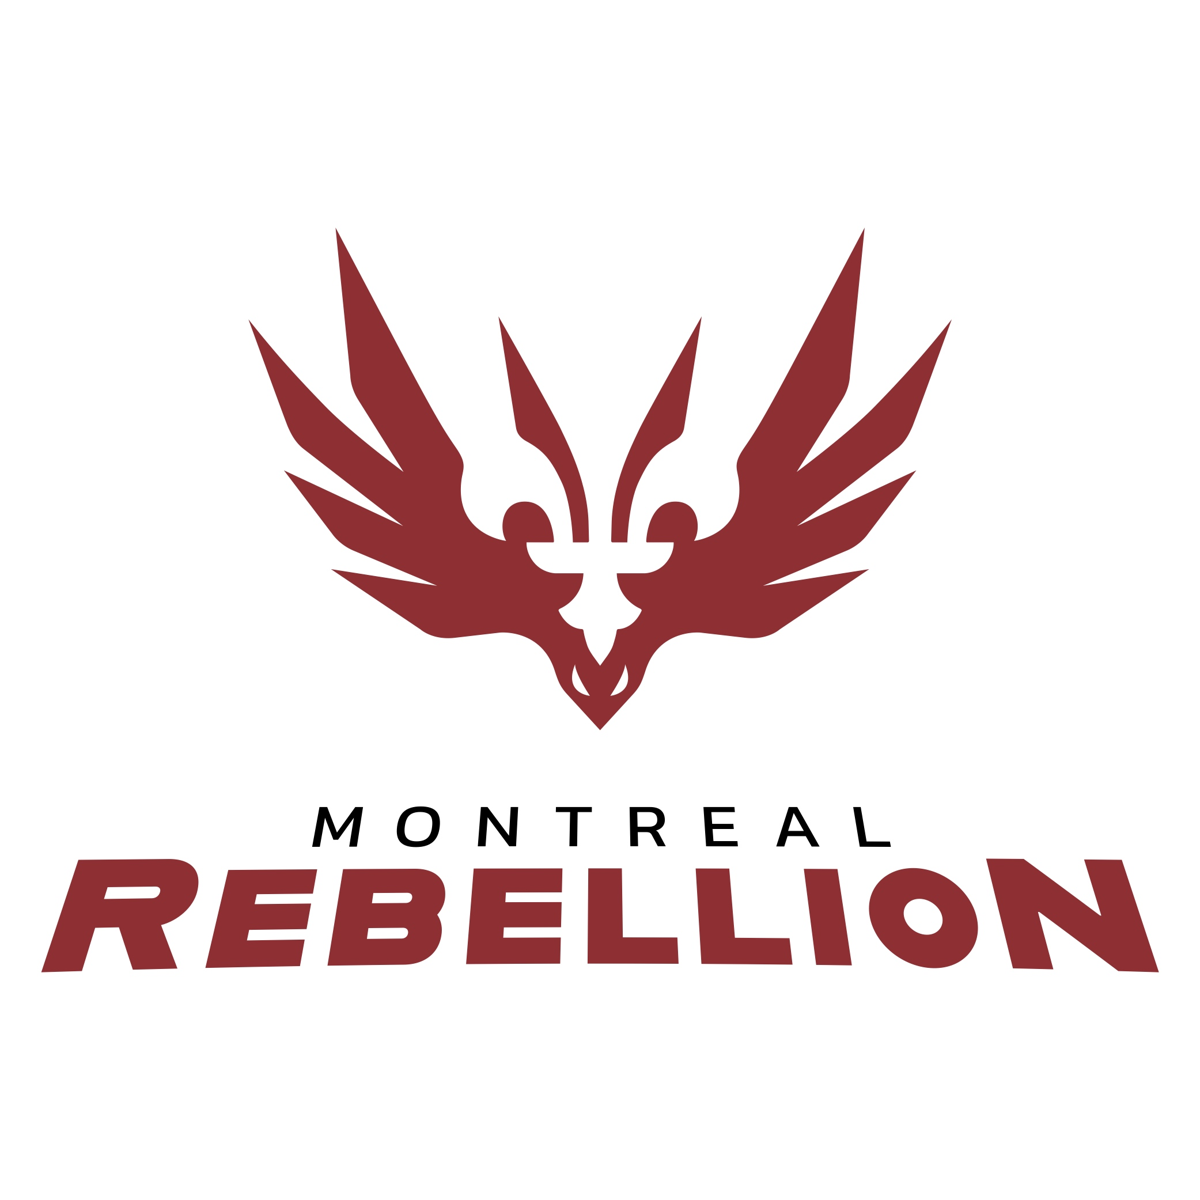 New Montreal Rebellion logo unveiled at media event in Montreal